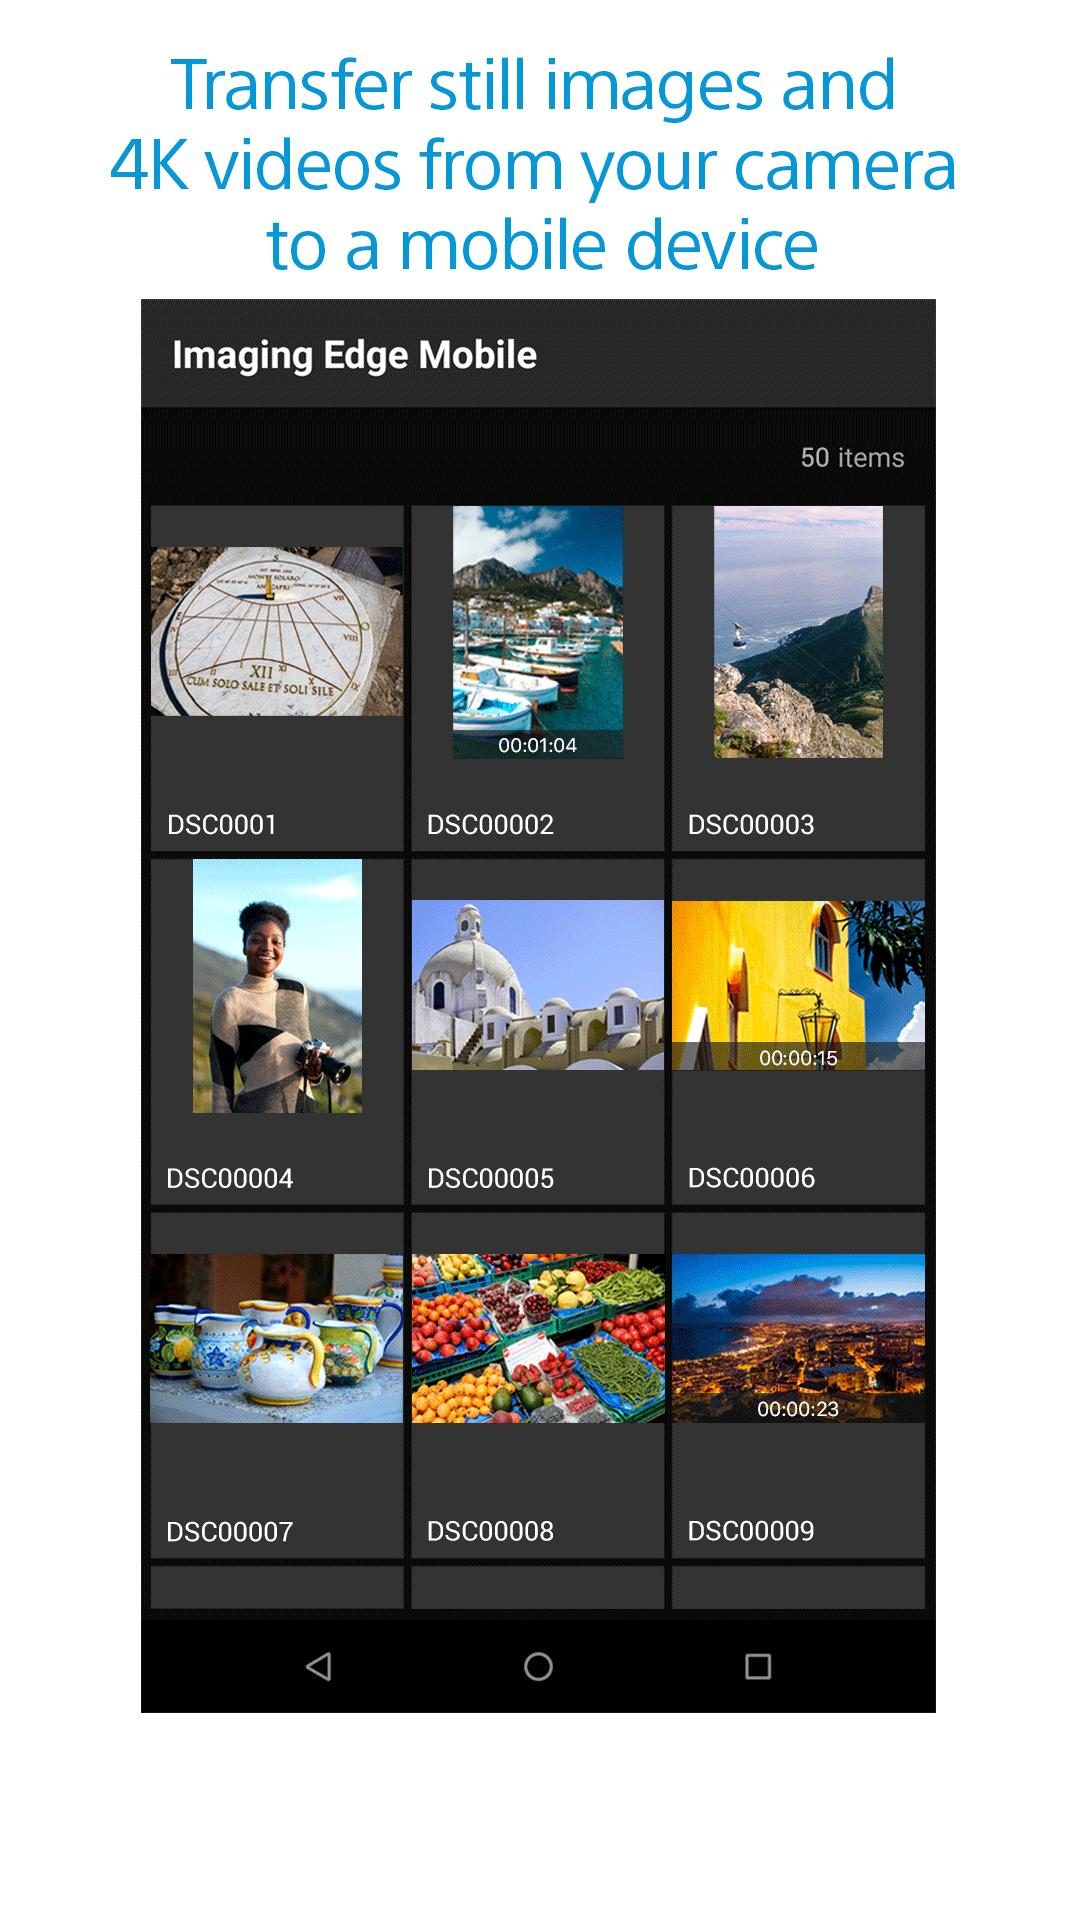 Imaging Edge Mobile for Android - APK Download